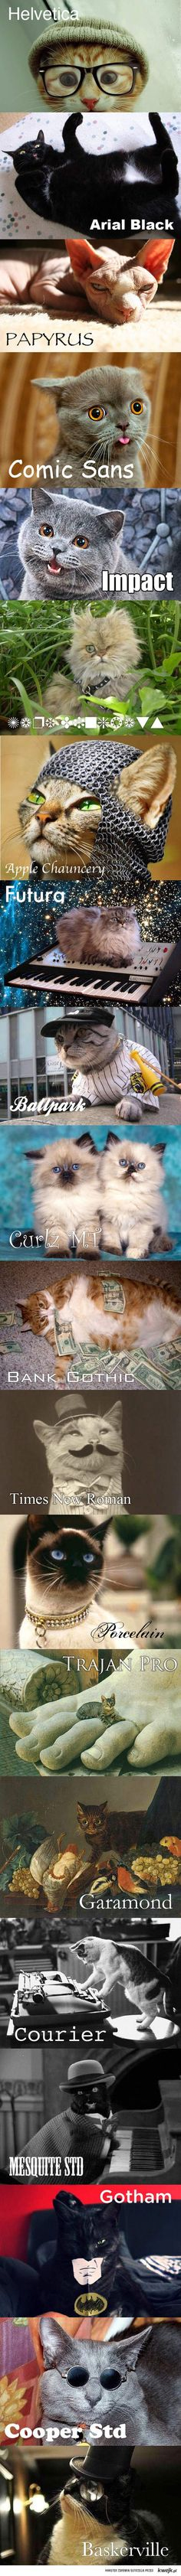 cats with their fonts :) I will never choose a font again without thinking about a cat